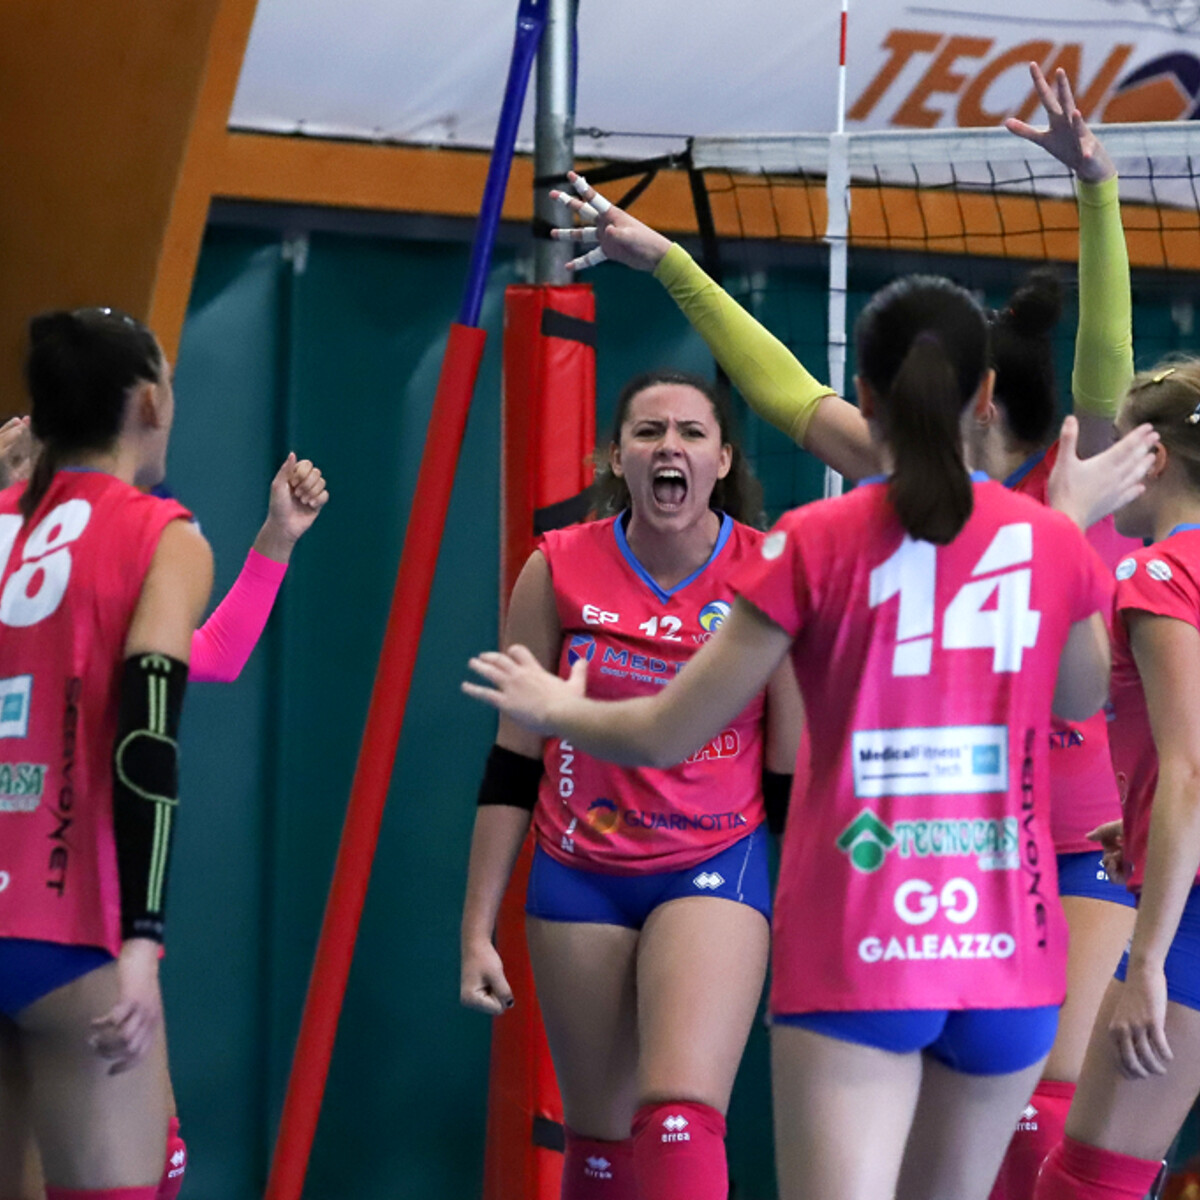 Medtrade volley Palermo, historic debut in women's B2 series thumbnail